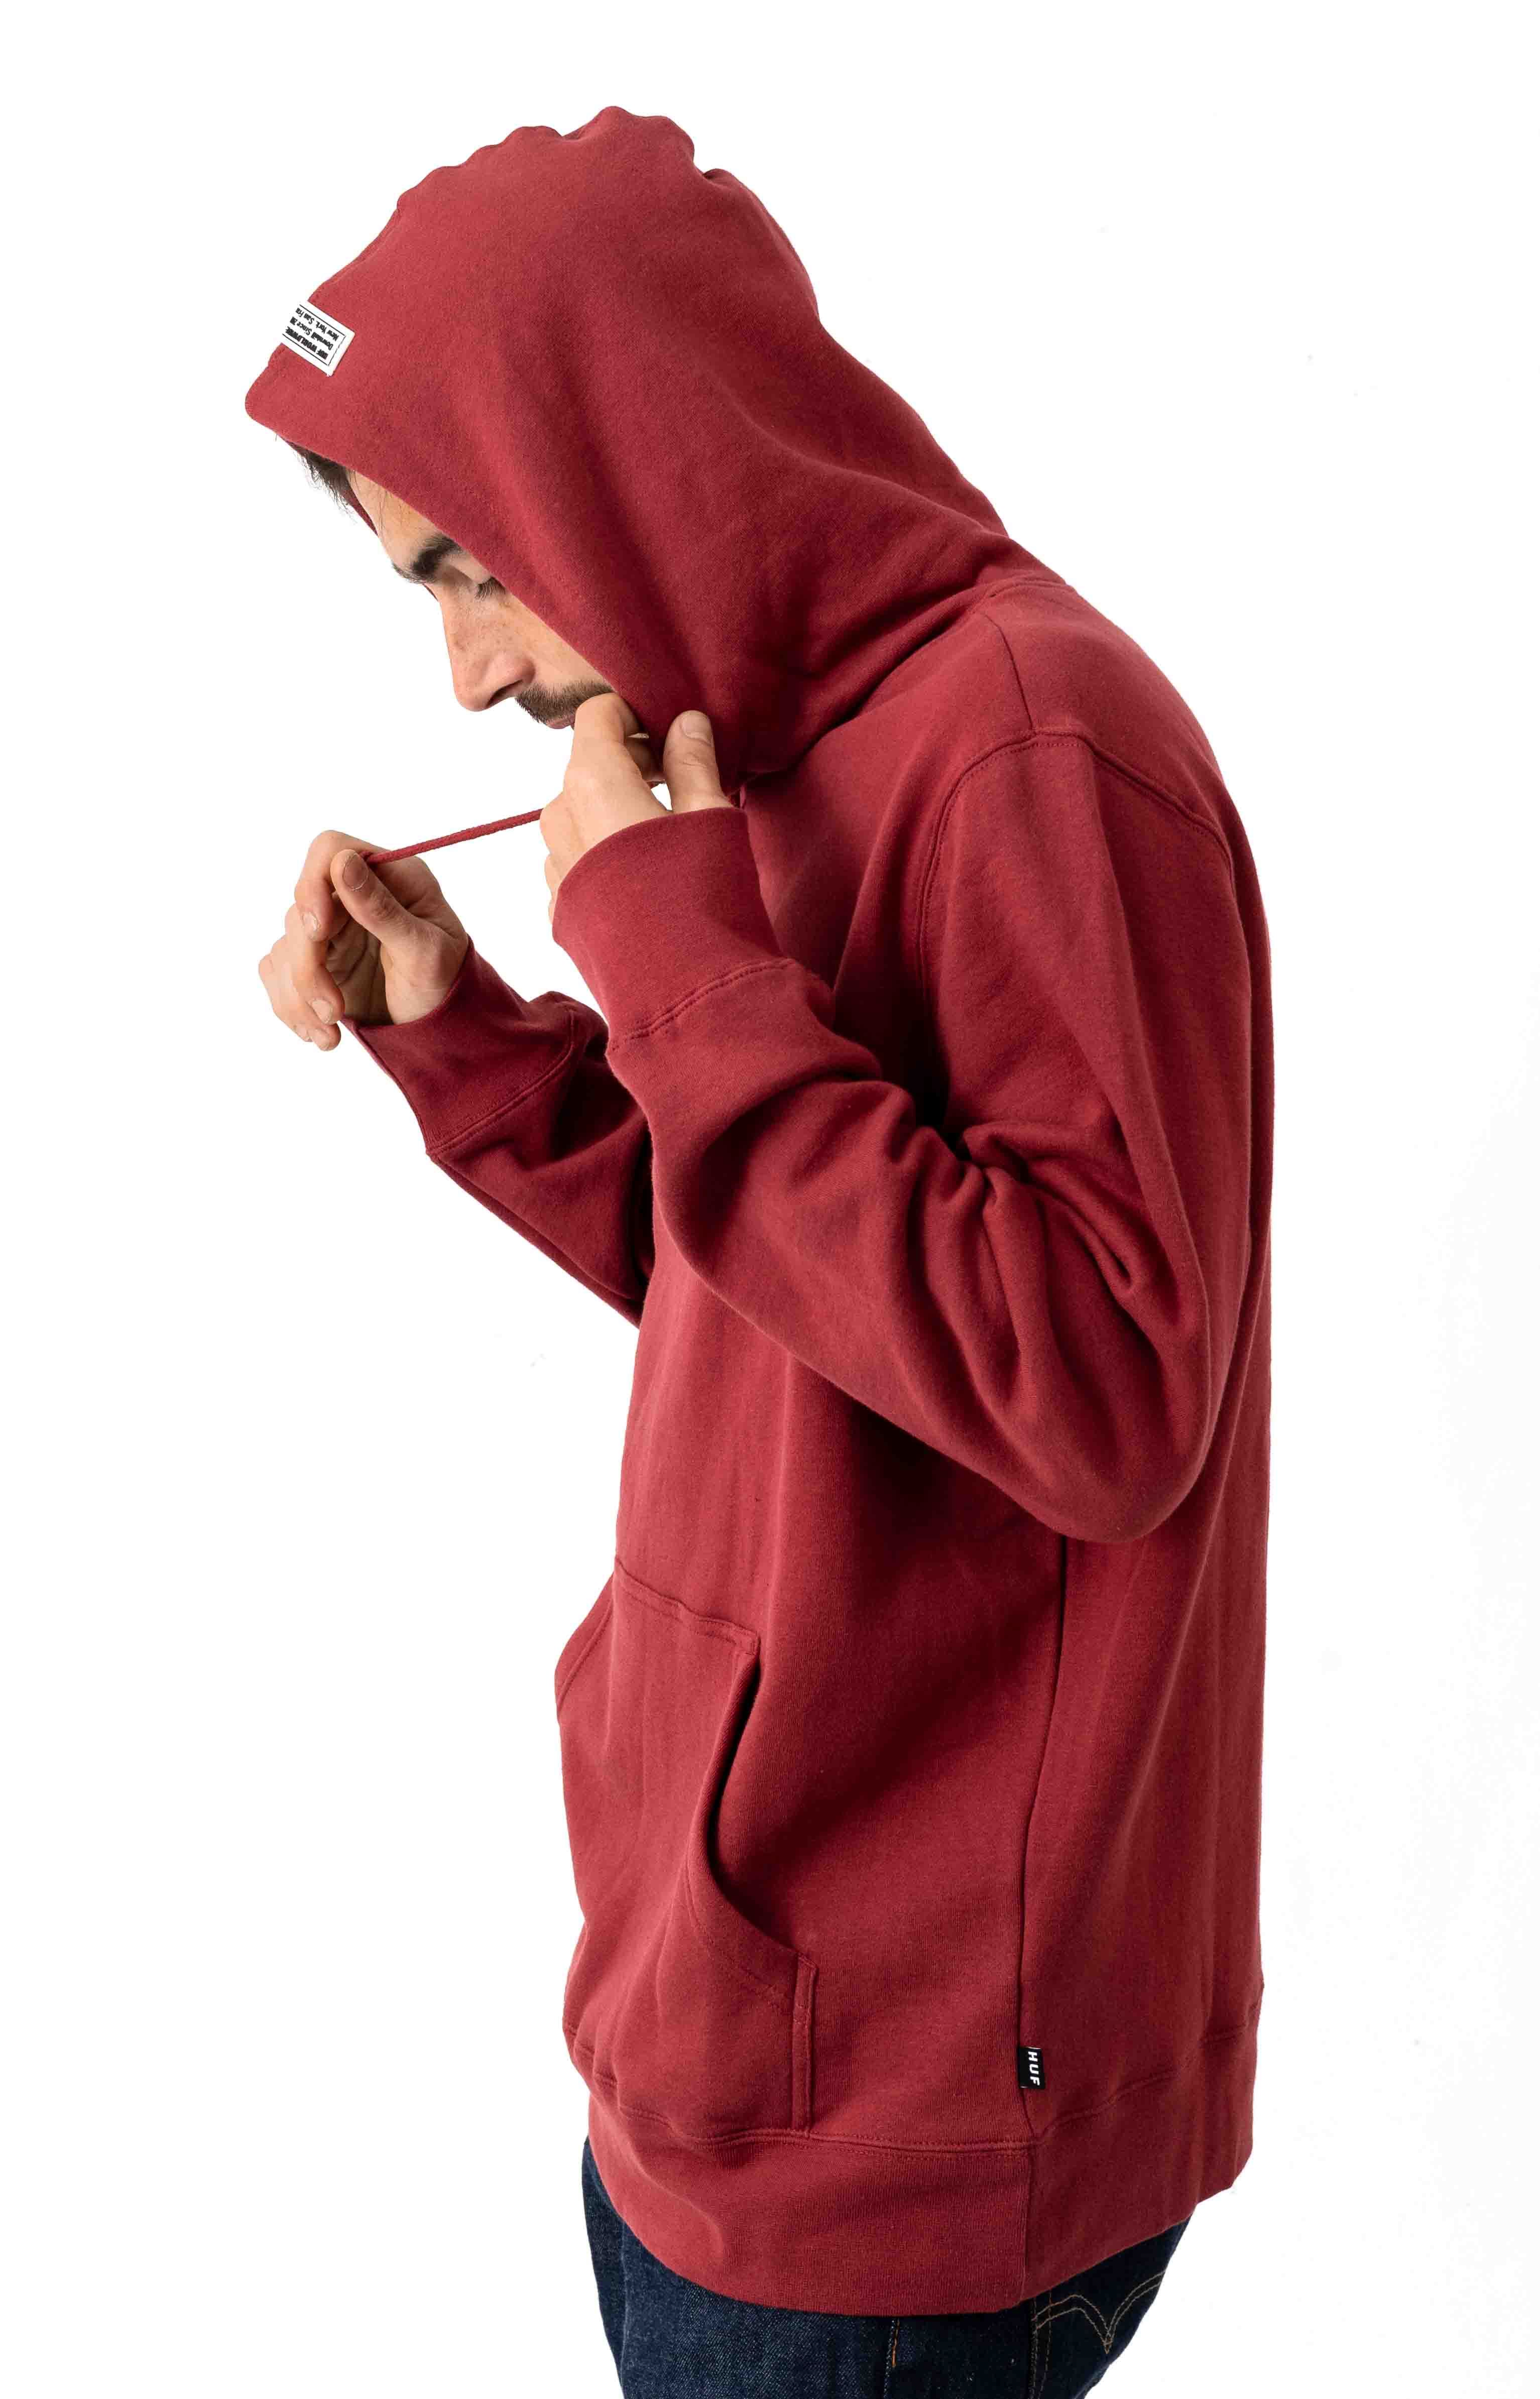 Burn Fast Pullover Hoodie - Red Pear  2